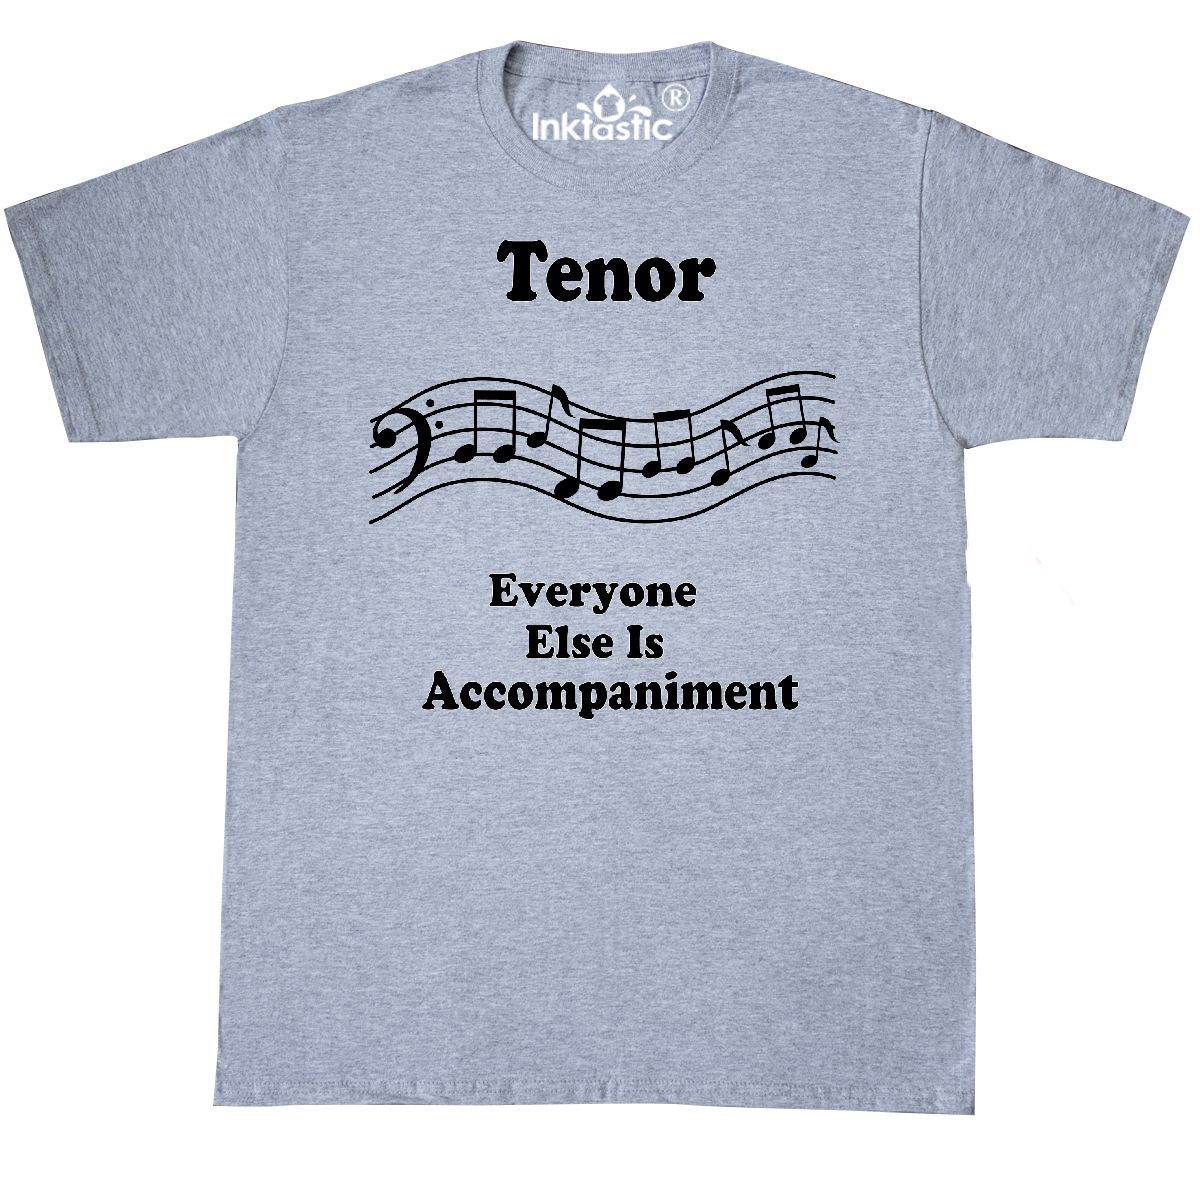 3dff2f8c7 Inktastic Funny Tenor Singer Choir Gift T-Shirt Section Music ...